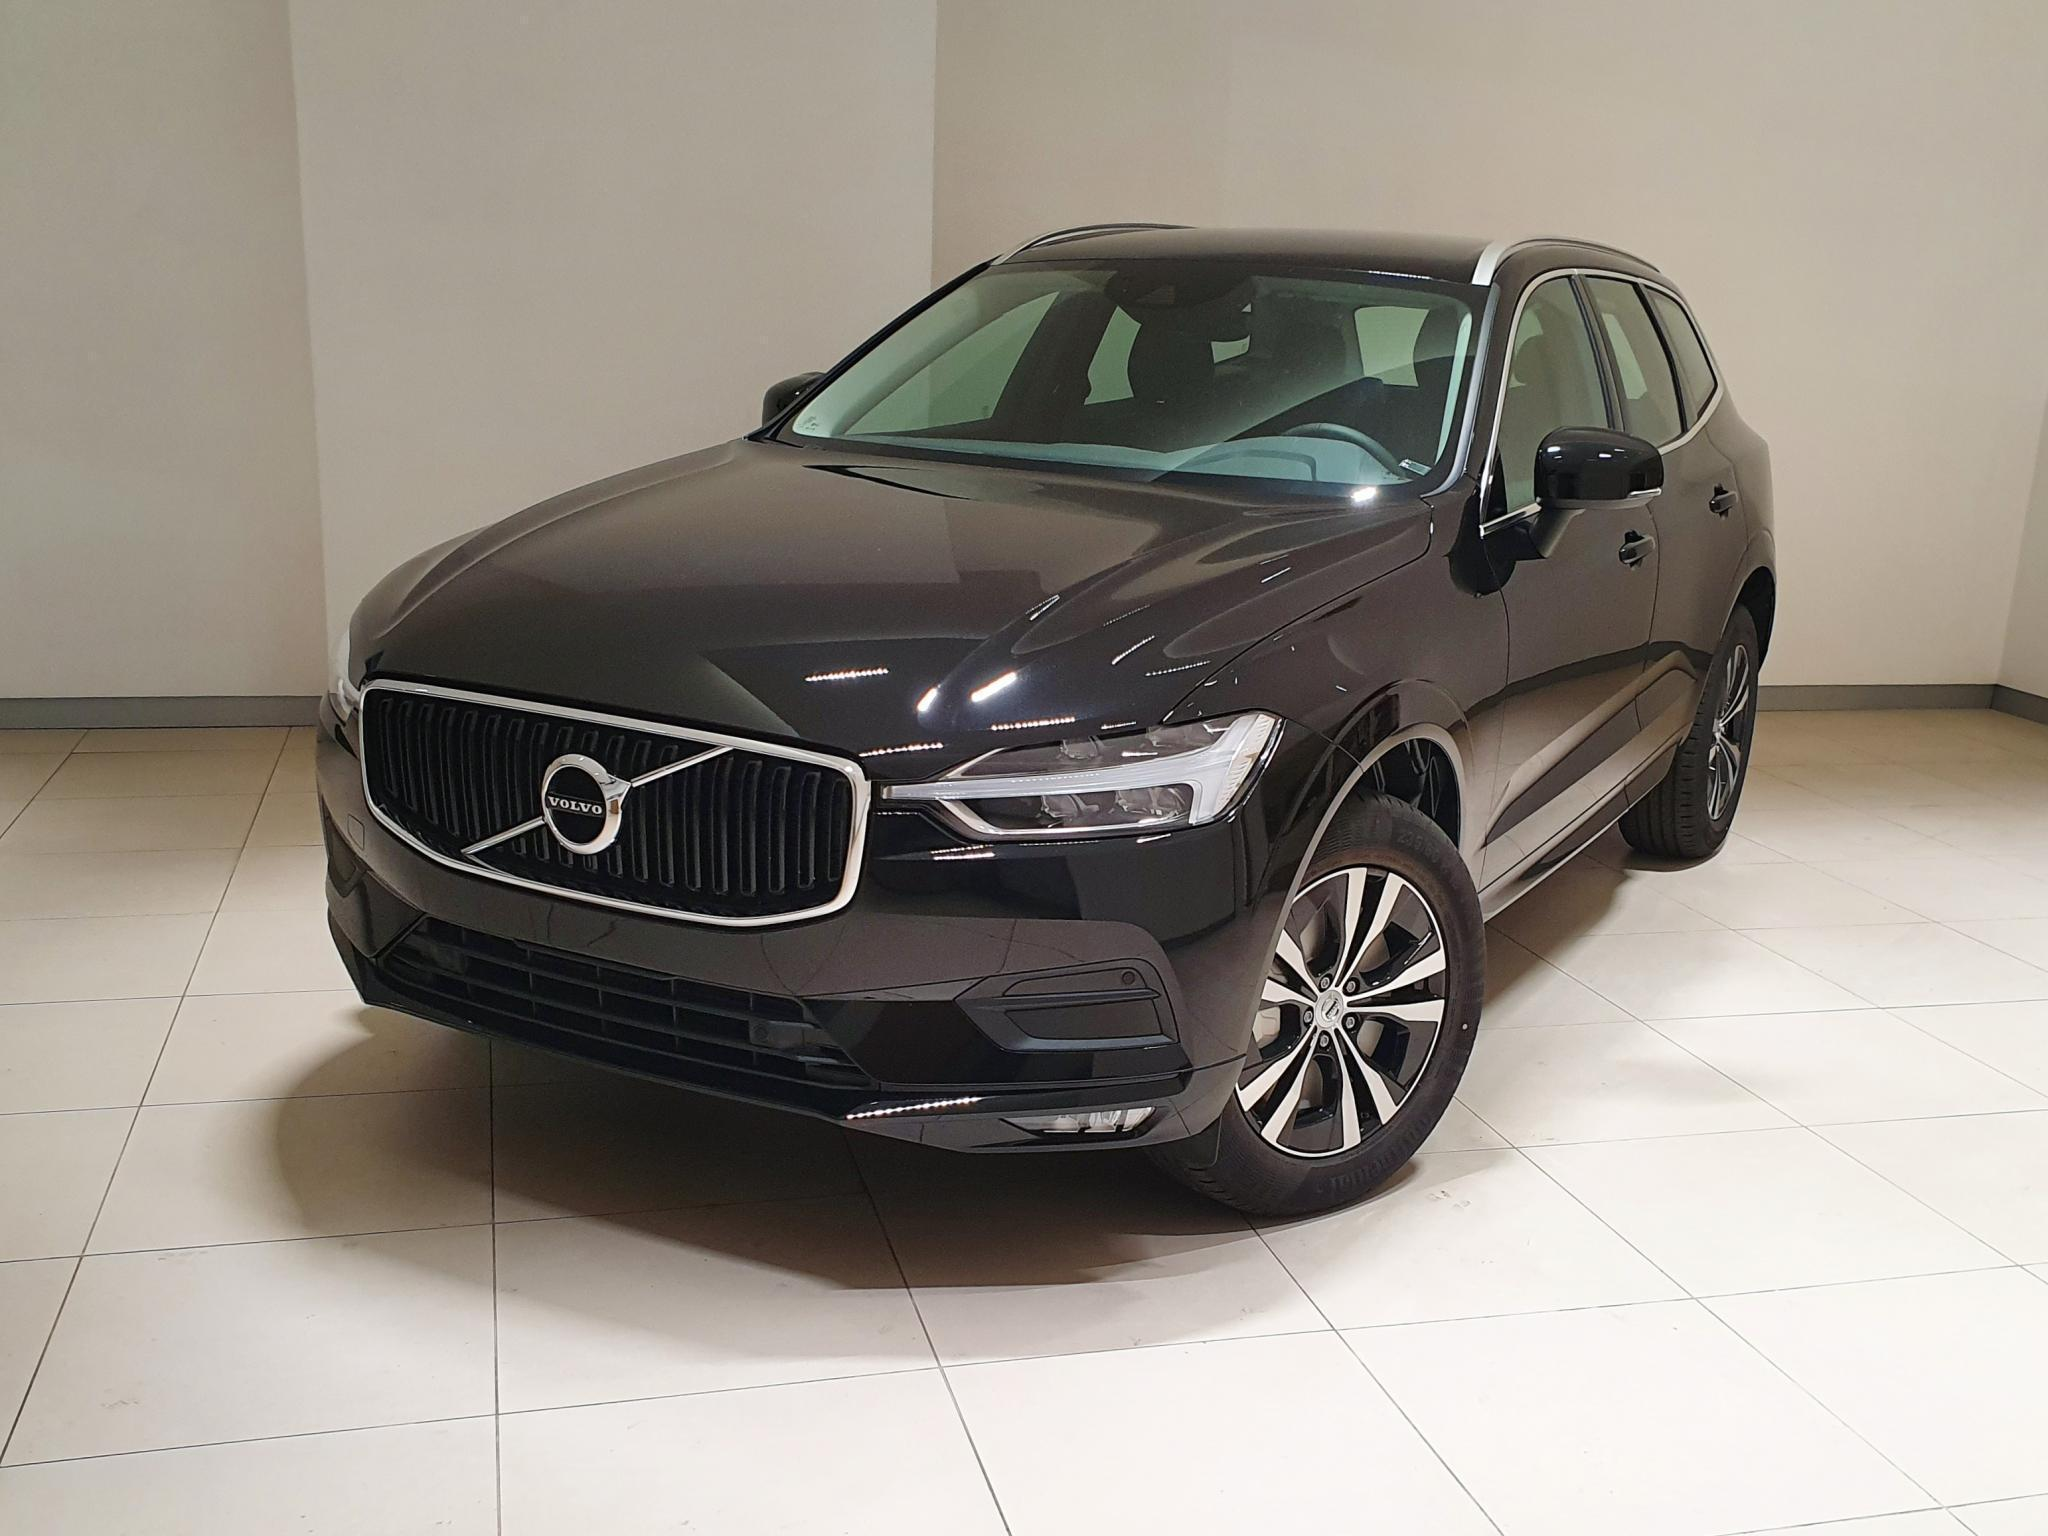 Foto Volvo XC 60 B4 AWD Geartronic Business plus*A 329,15€ AL MESE*